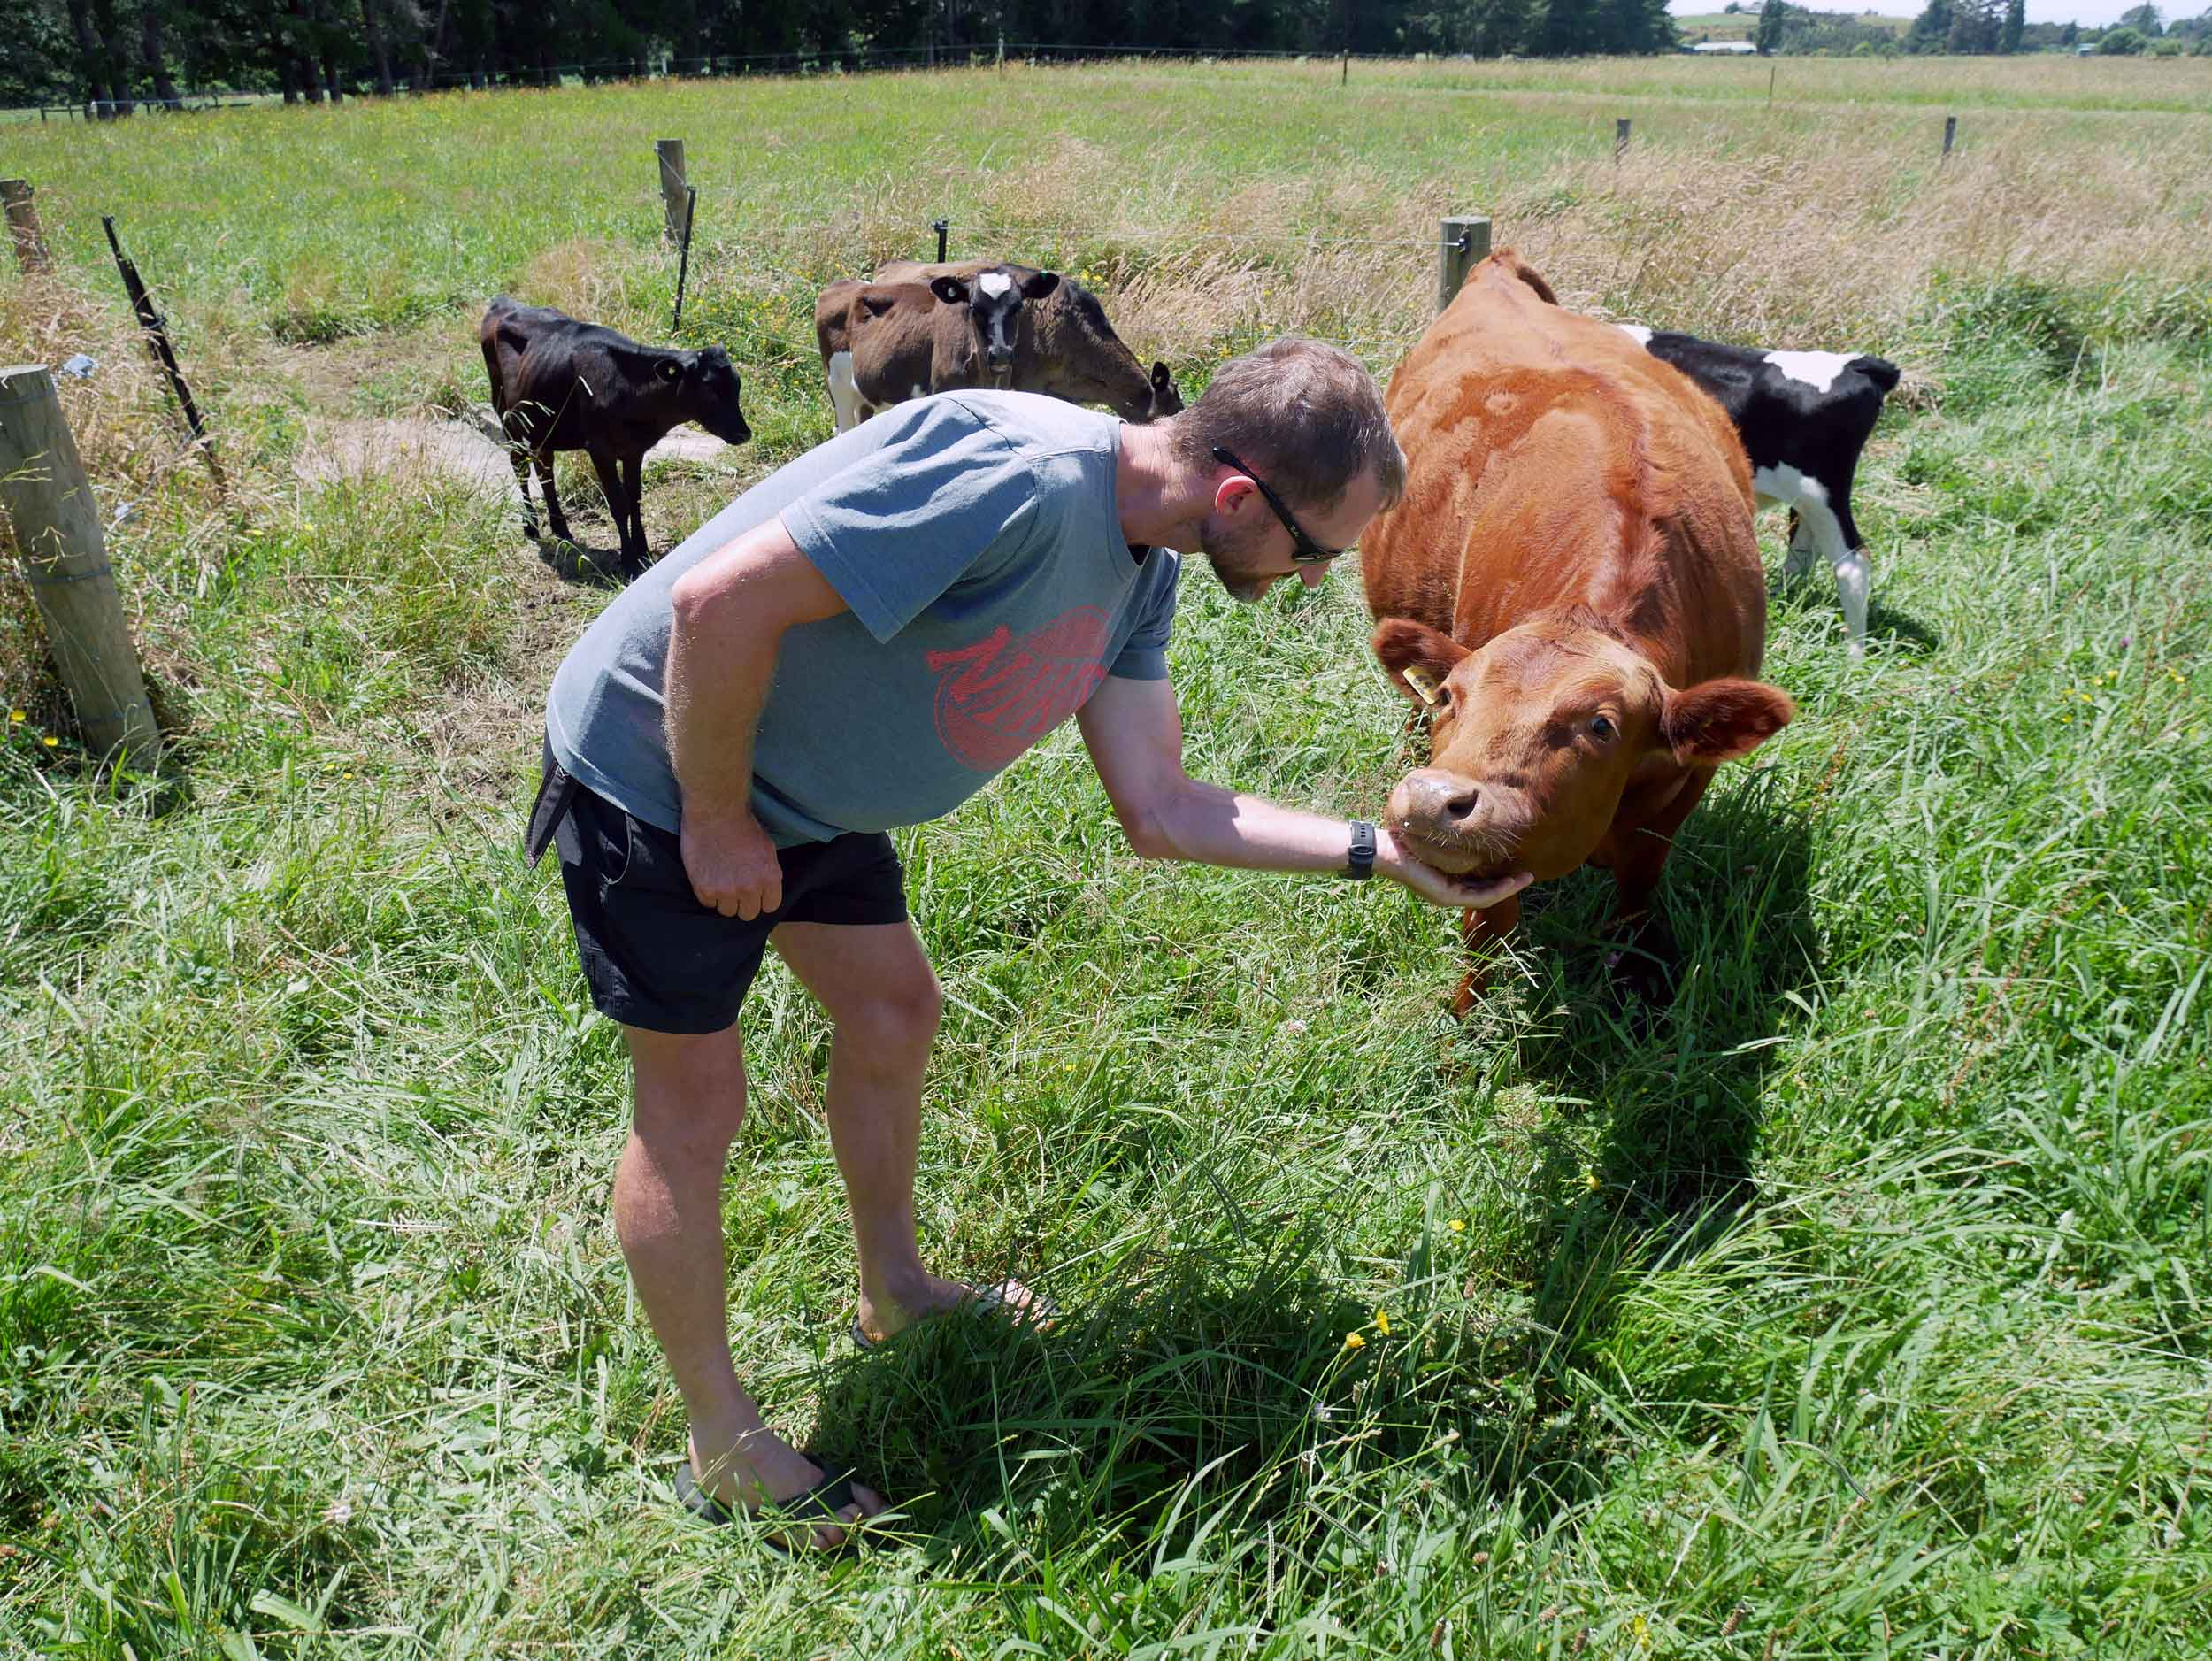 Shane introduces us to the cows of Puramahoi Fields... meet gorgeous Dexter (also the breed).